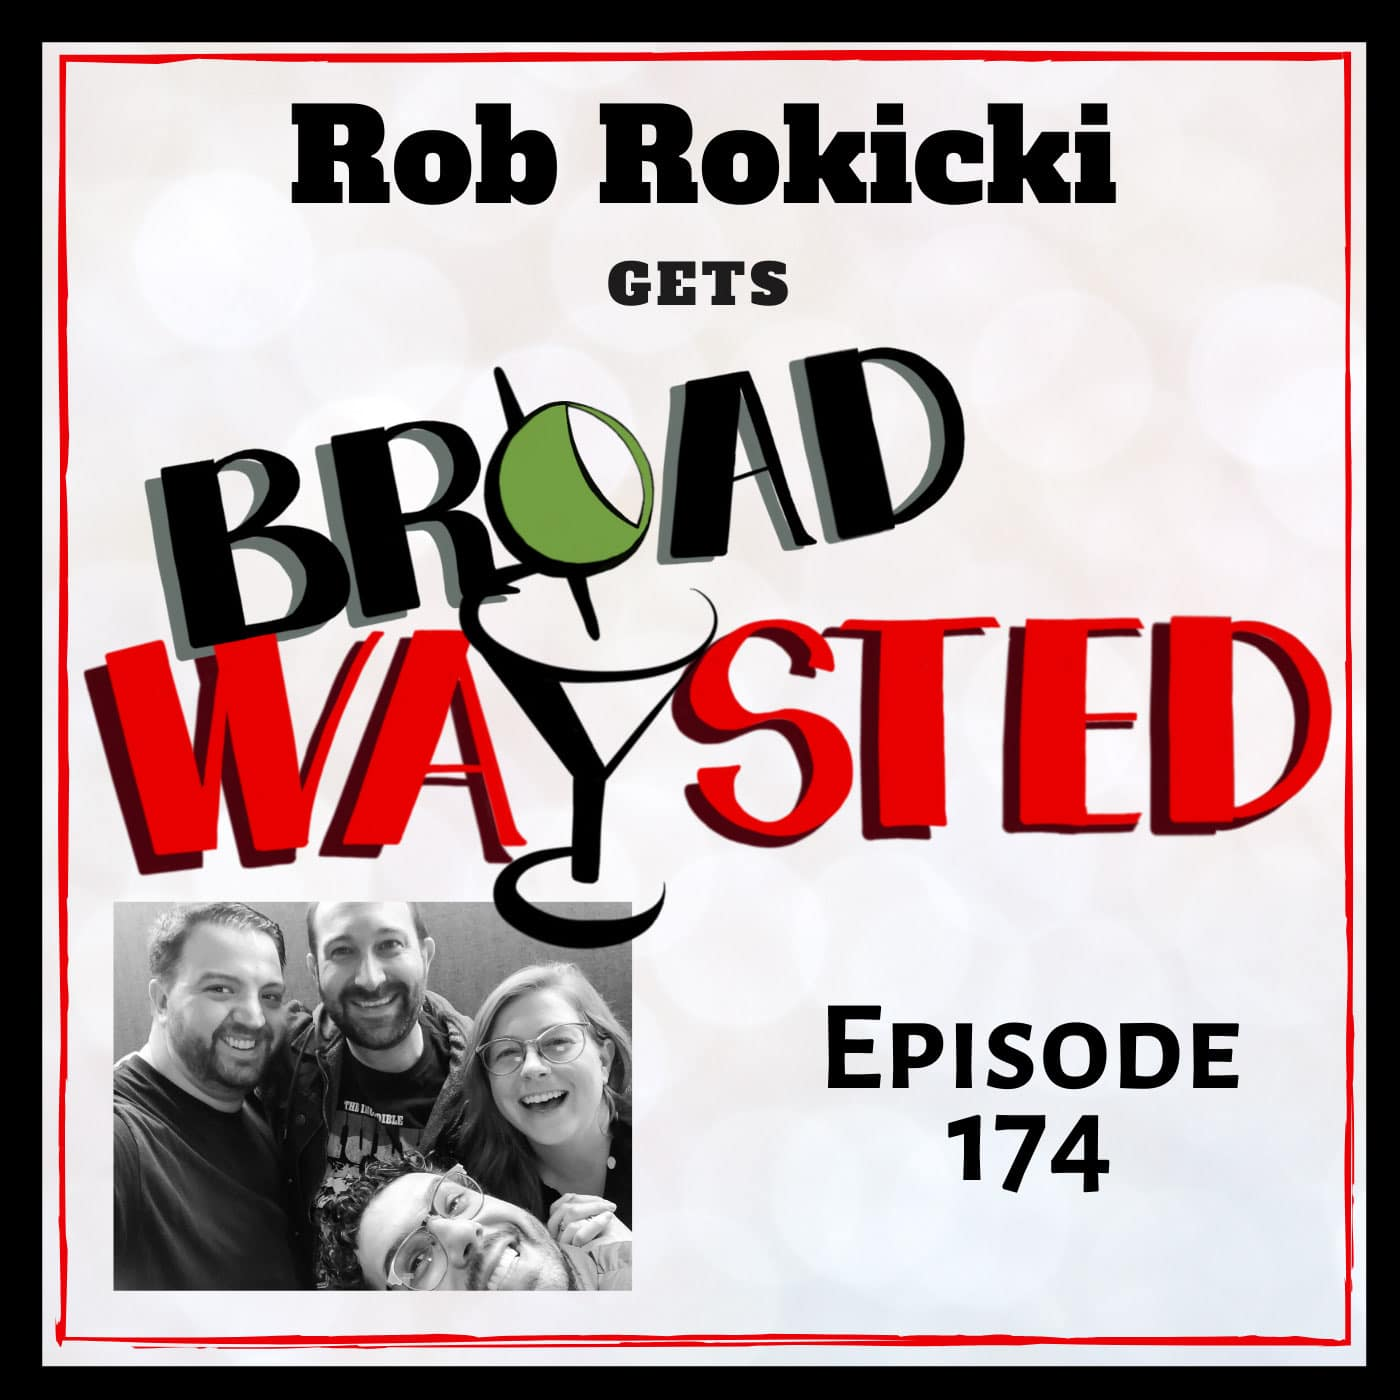 Broadwaysted Episode 174: Rob Rokicki gets Broadwaysted!